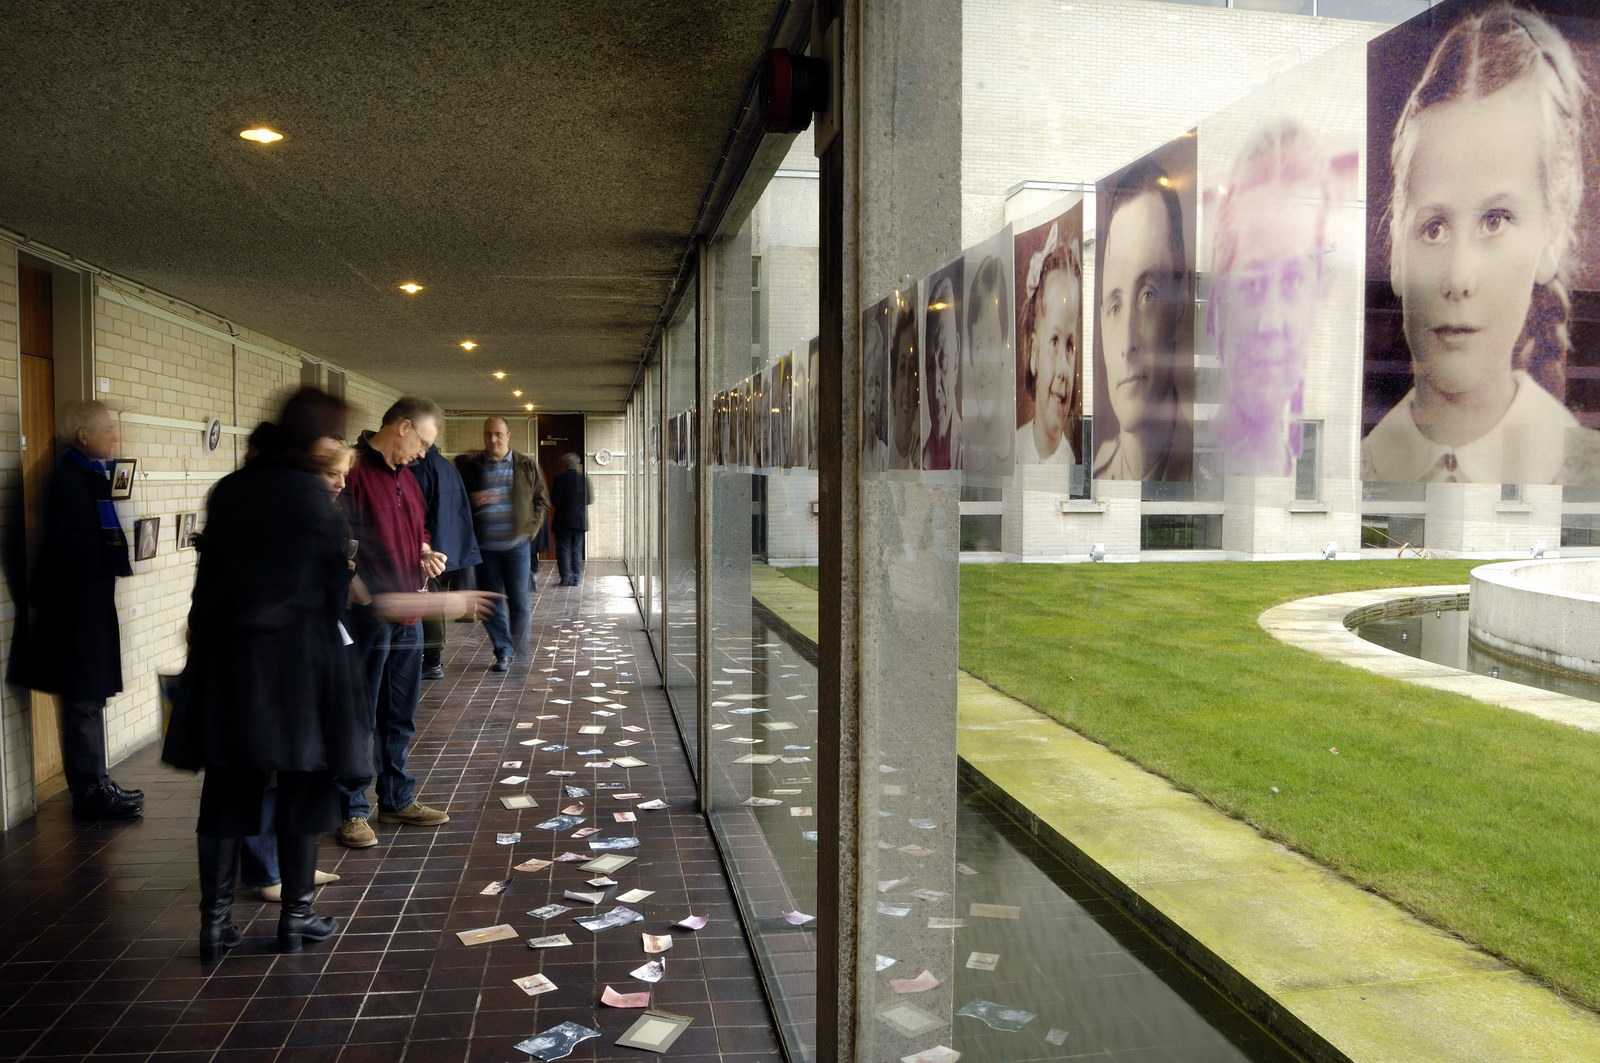 Art by Ruth Hartley: Ruth participated the Mother Art exhibition. This photo by Douglas Atfield shows visitors to the exhibition looking at postcards scattered on the floor of a long corridor alongside a glass wall with portraits hanging. The portrait nearest to the viewer is of a young girl.